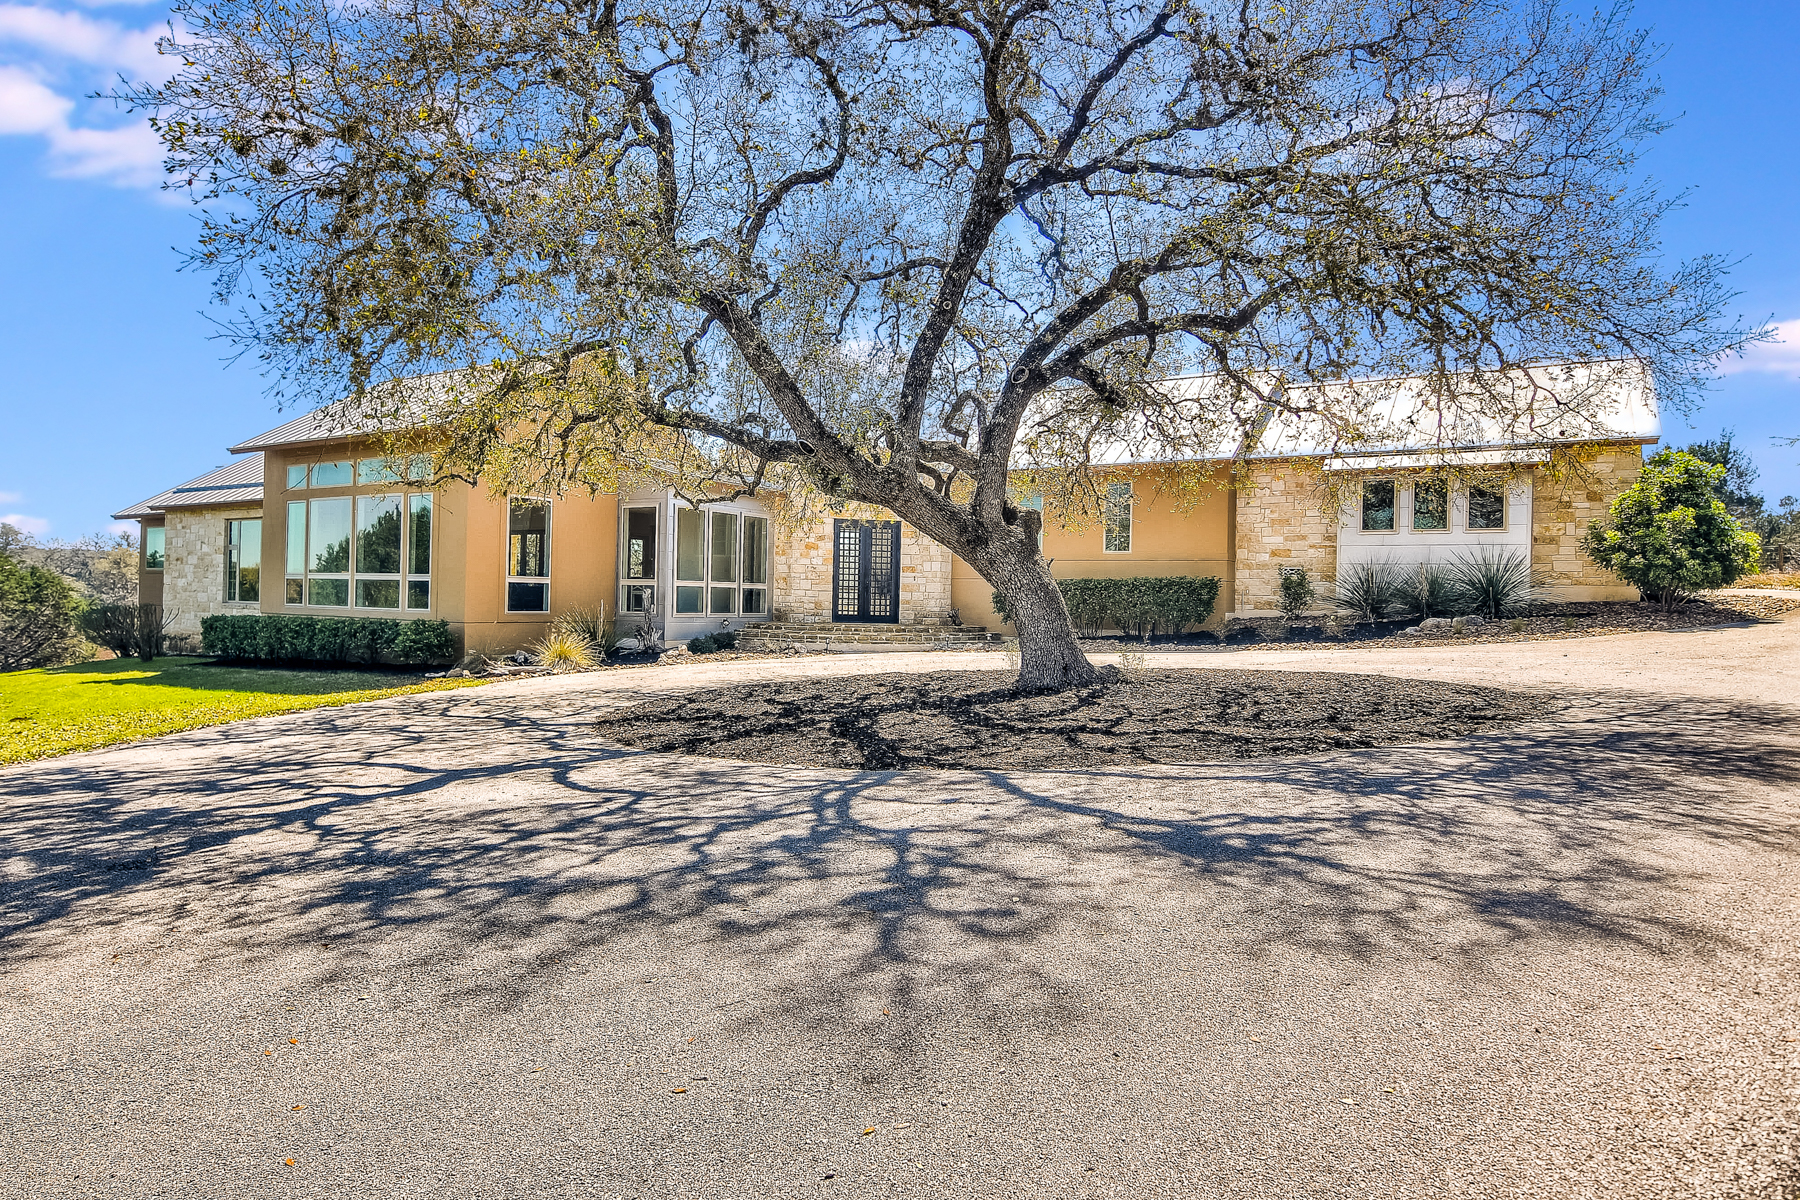 Single Family Home for Sale at Beautiful Modern Home in Cordillera Ranch 318 Park Ridge Boerne, Texas 78006 United States